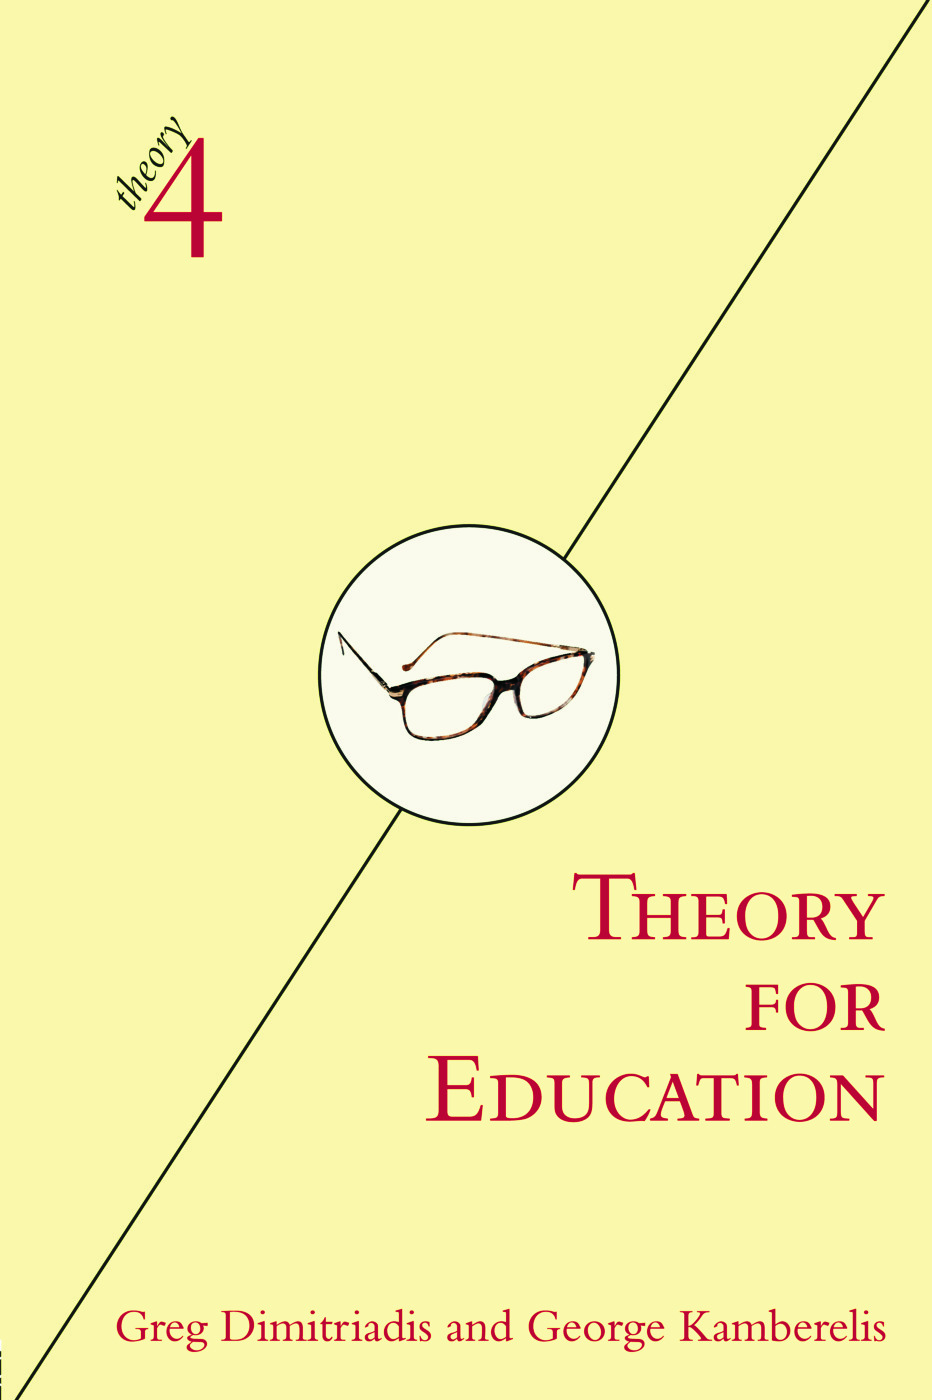 Theory for Education: Adapted from Theory for Religious Studies, by William E. Deal and Timothy K. Beal book cover